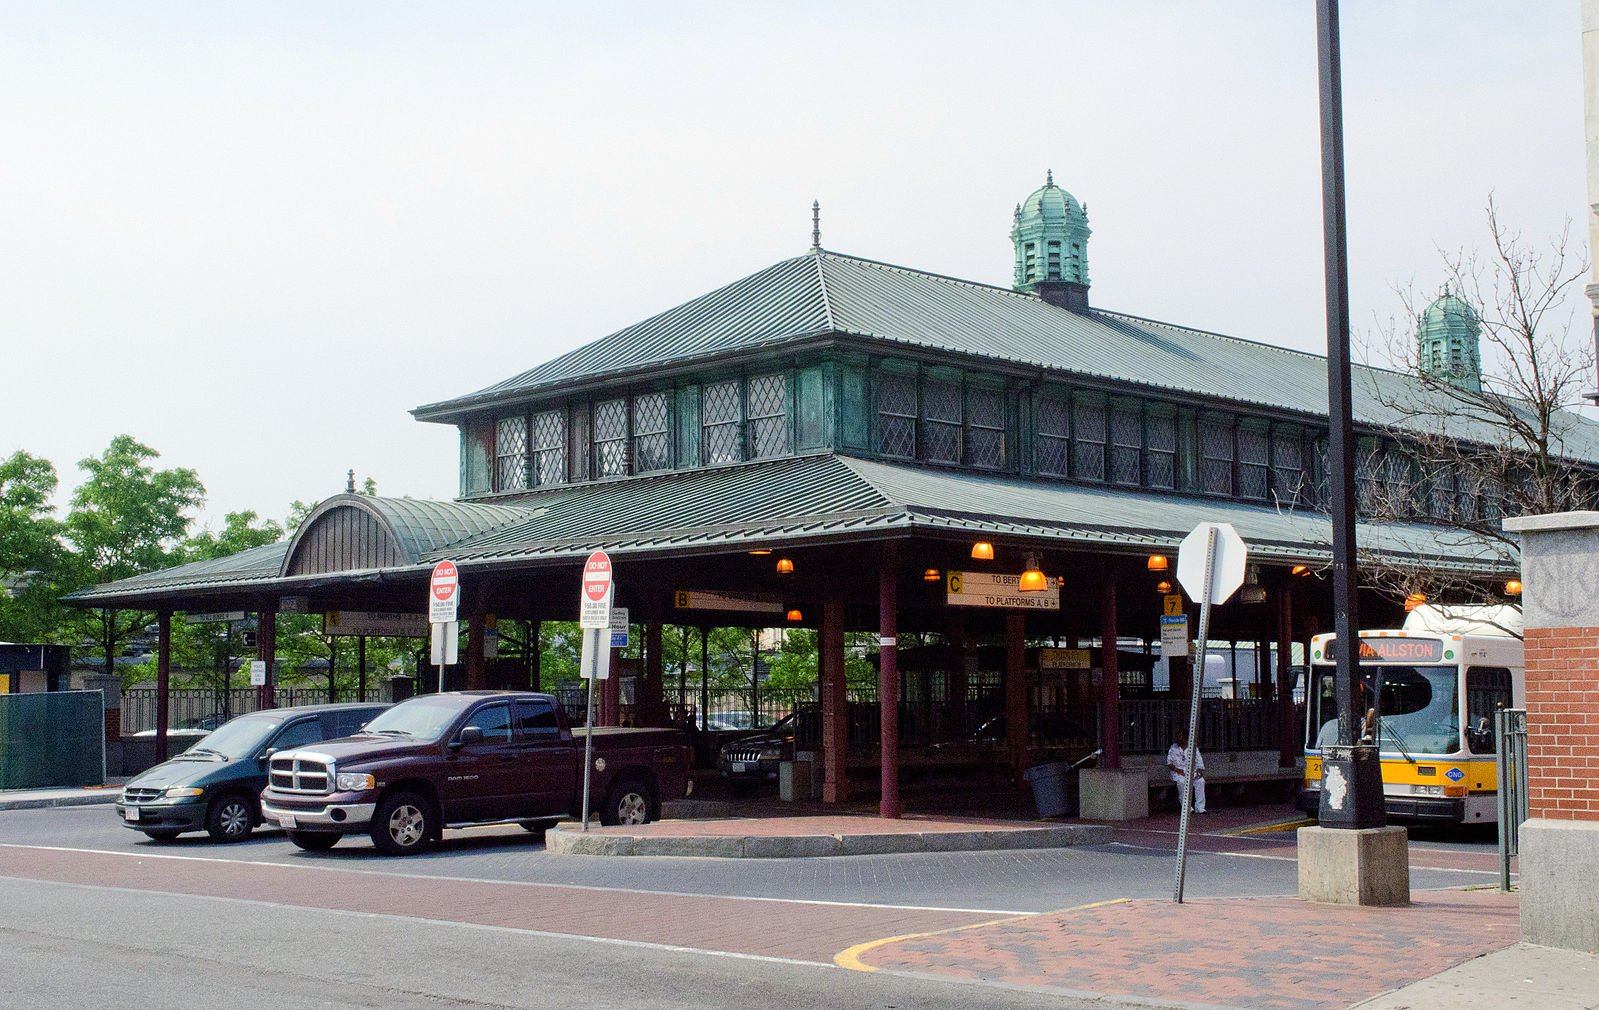 The current appearance of Dudley Station.  The photo was taken by Tim Pierce on June 1, 2011.